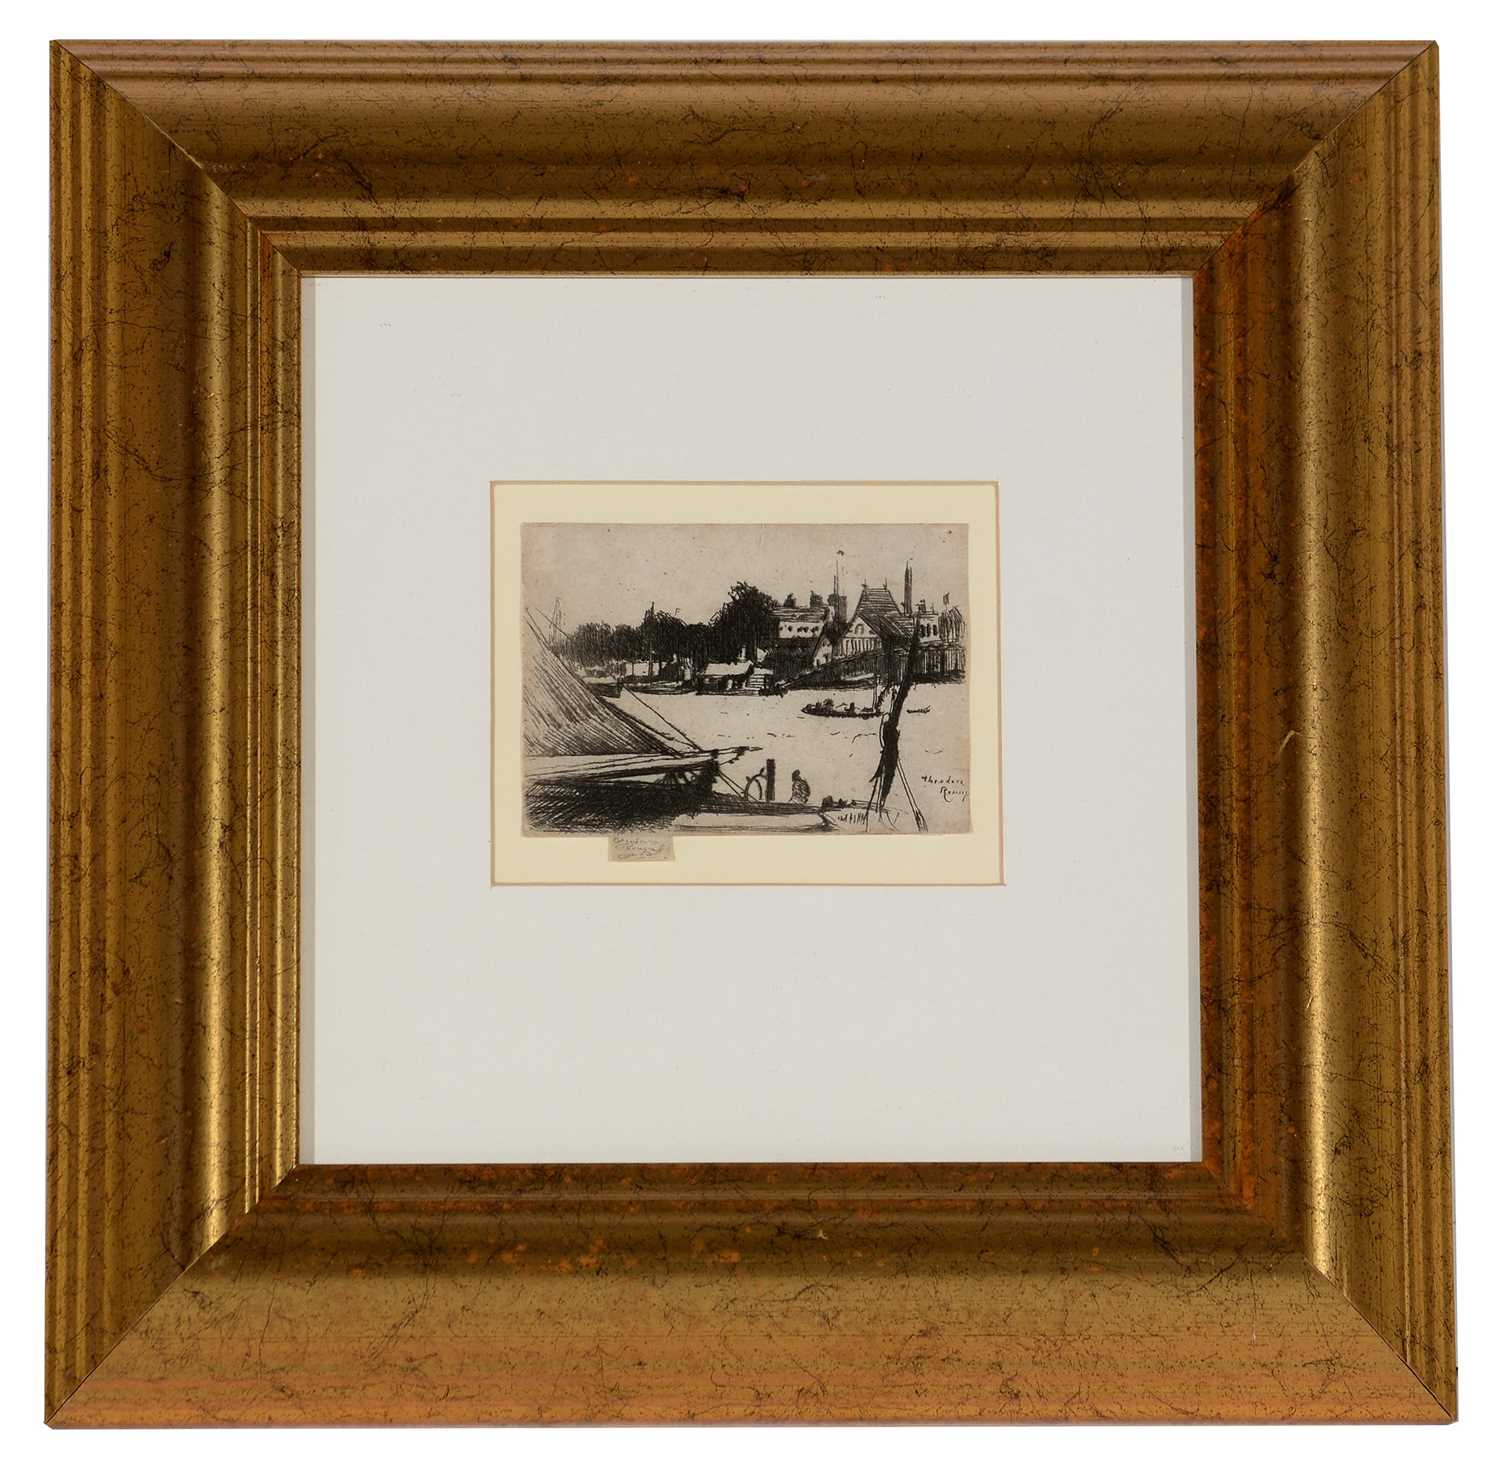 Lot 271-Theodore Roussel - etching.